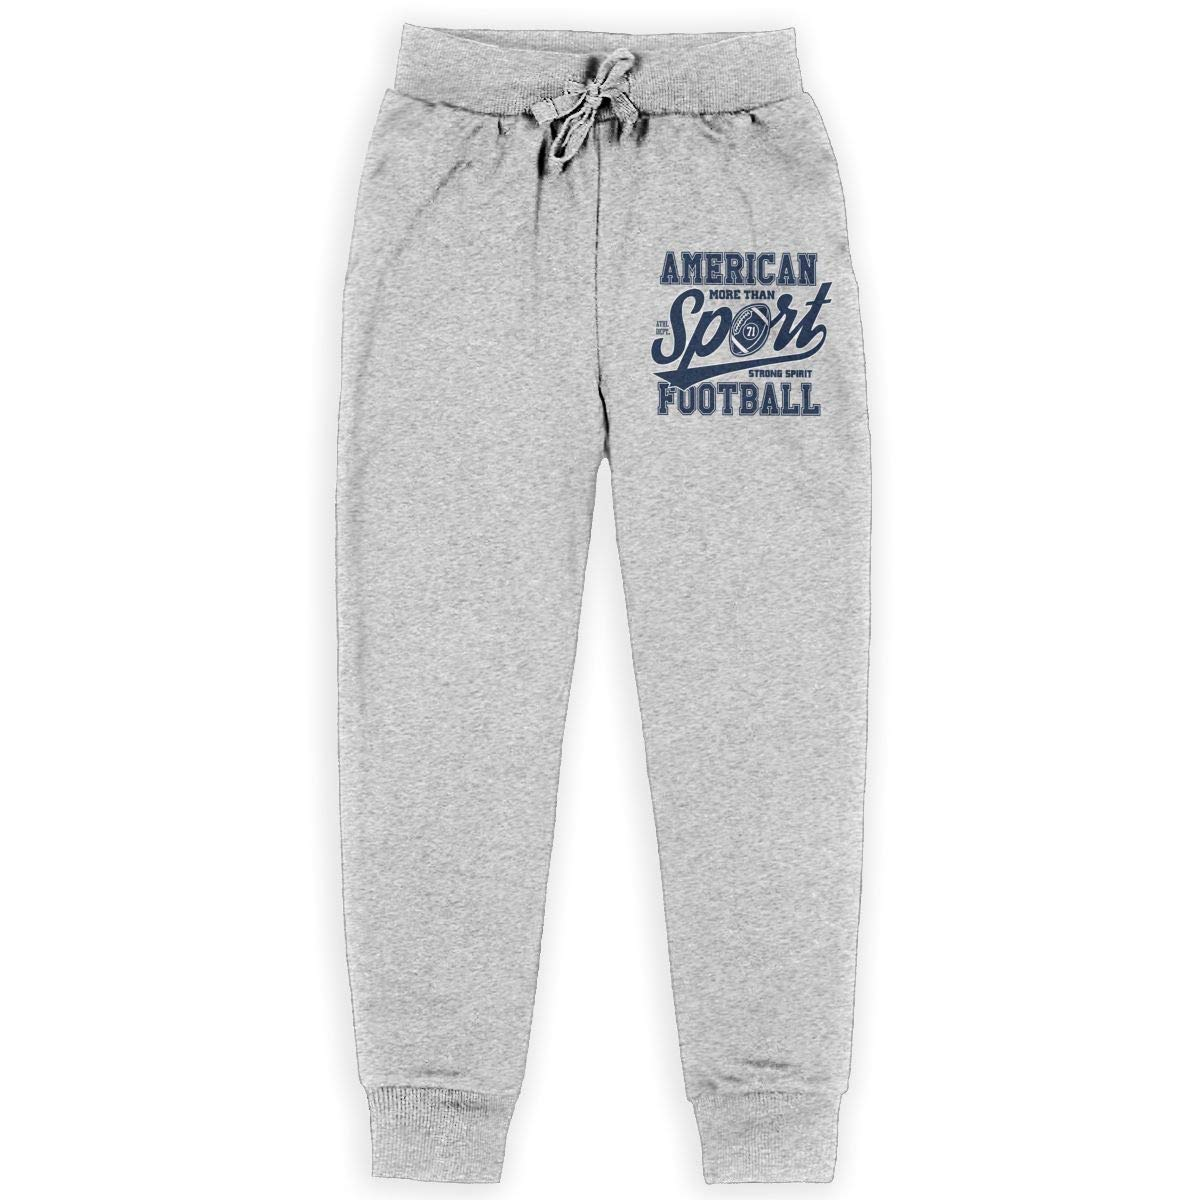 Xinding Boys Cotton Jogger Sweatpants American Football Stylized Adjustable Waist Pants with Pocket